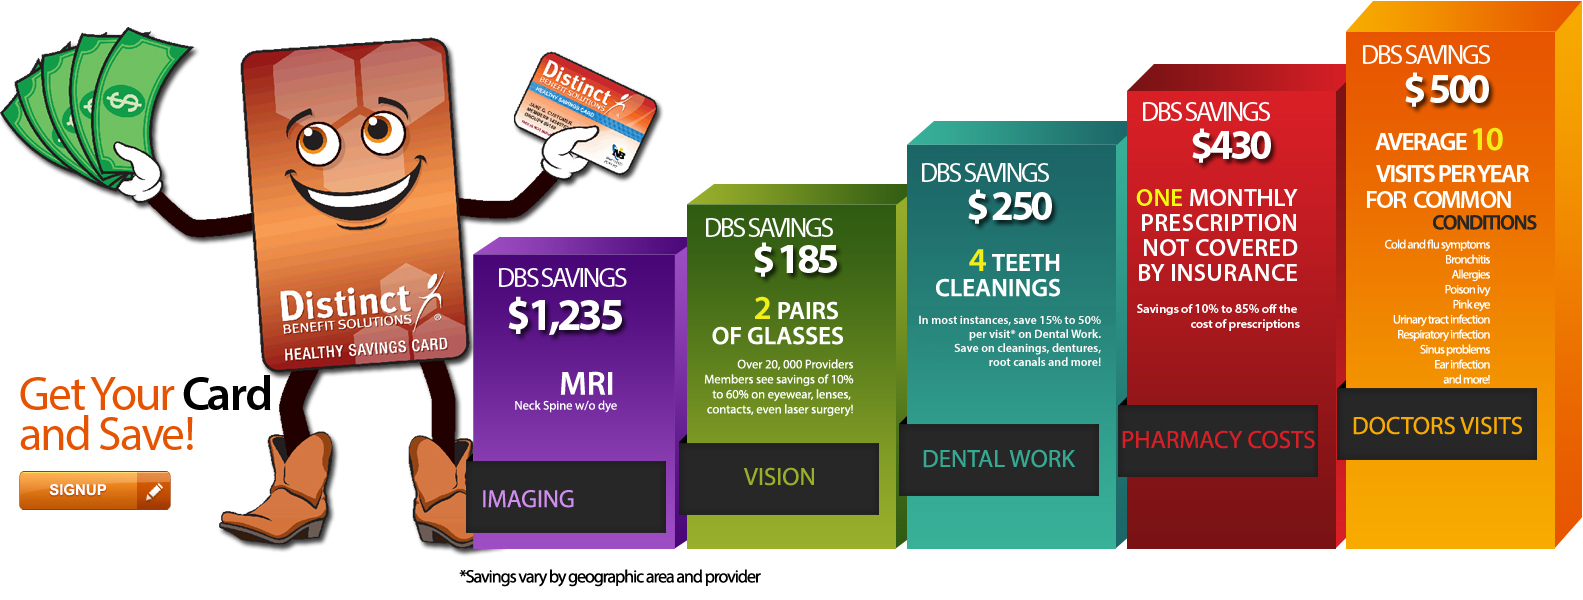 Free rx dental plan - Learn How To Maximize Your Benefits Using The Dbs Health Savings Card